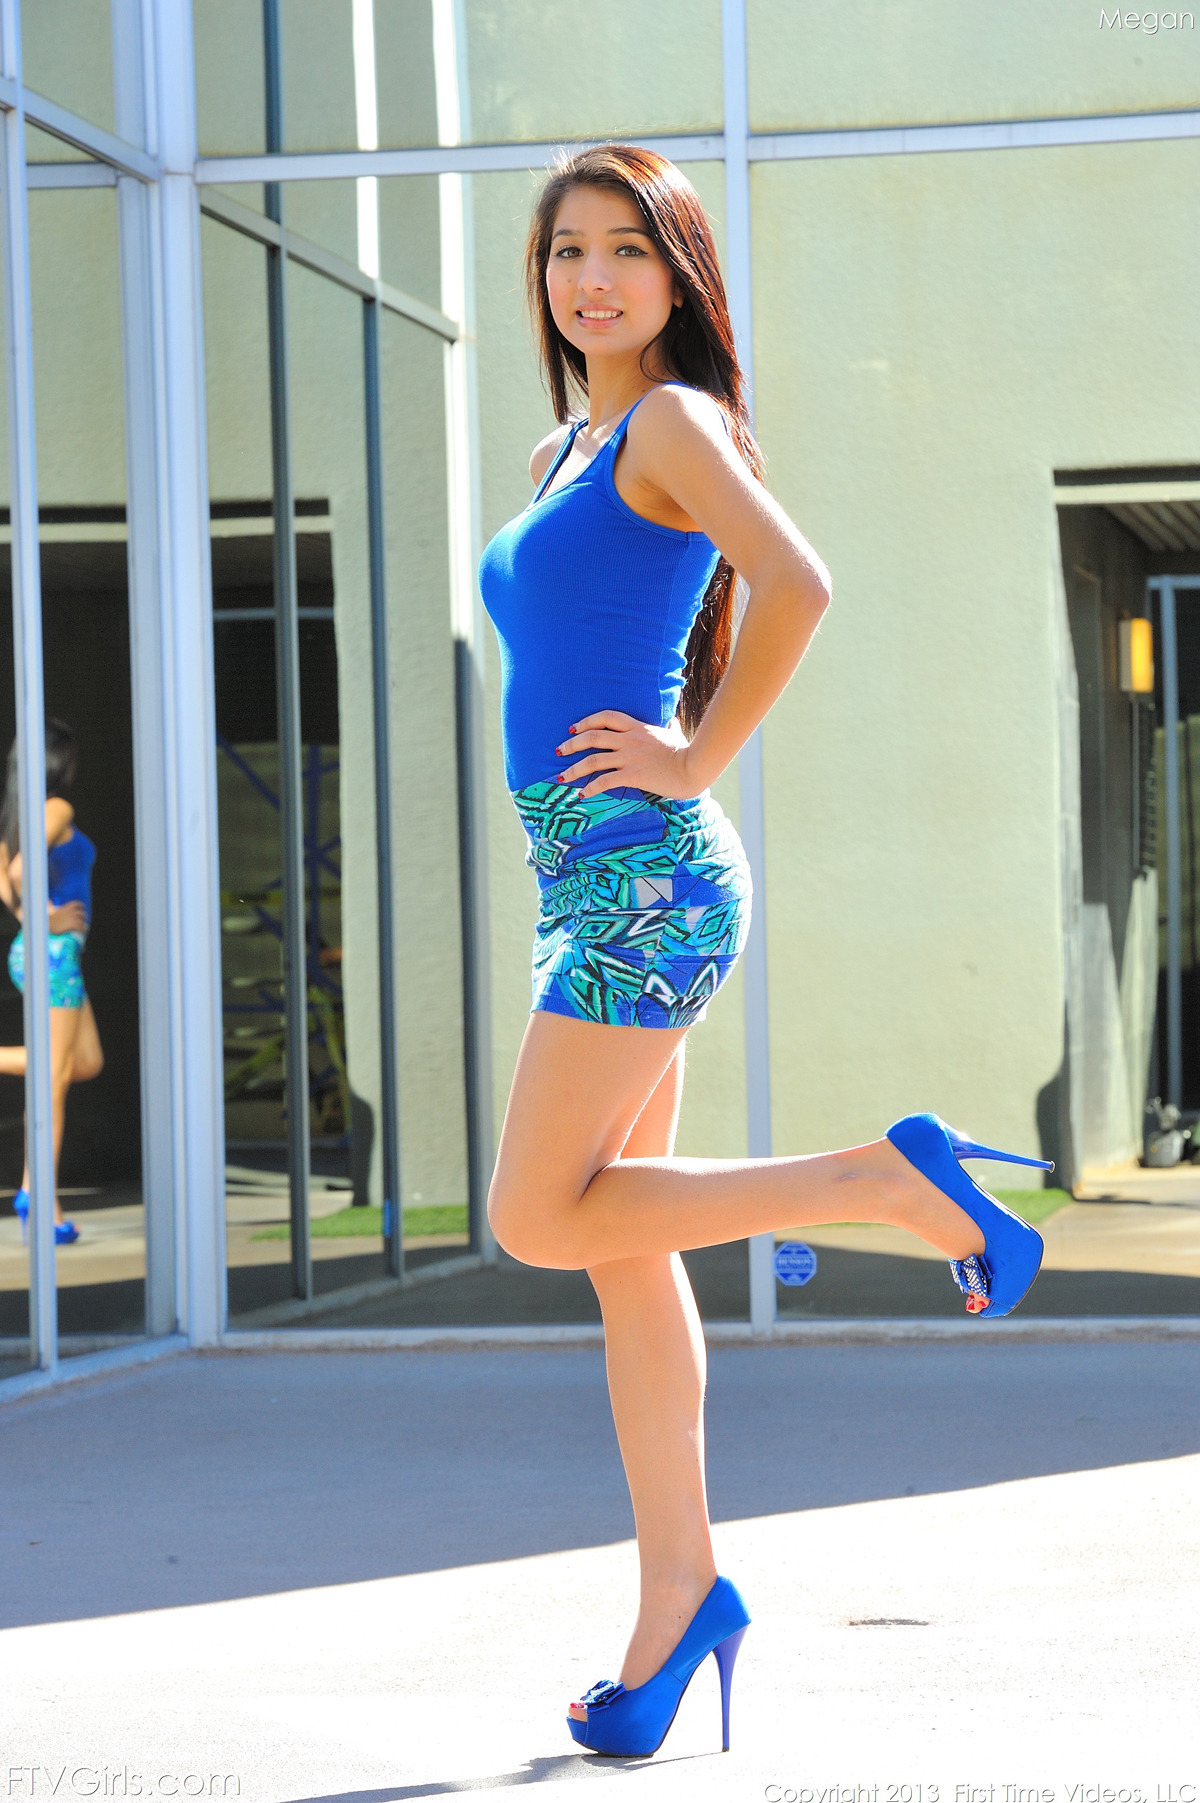 PHOTO   00 14 - Megan in Blue Dress and High Heels